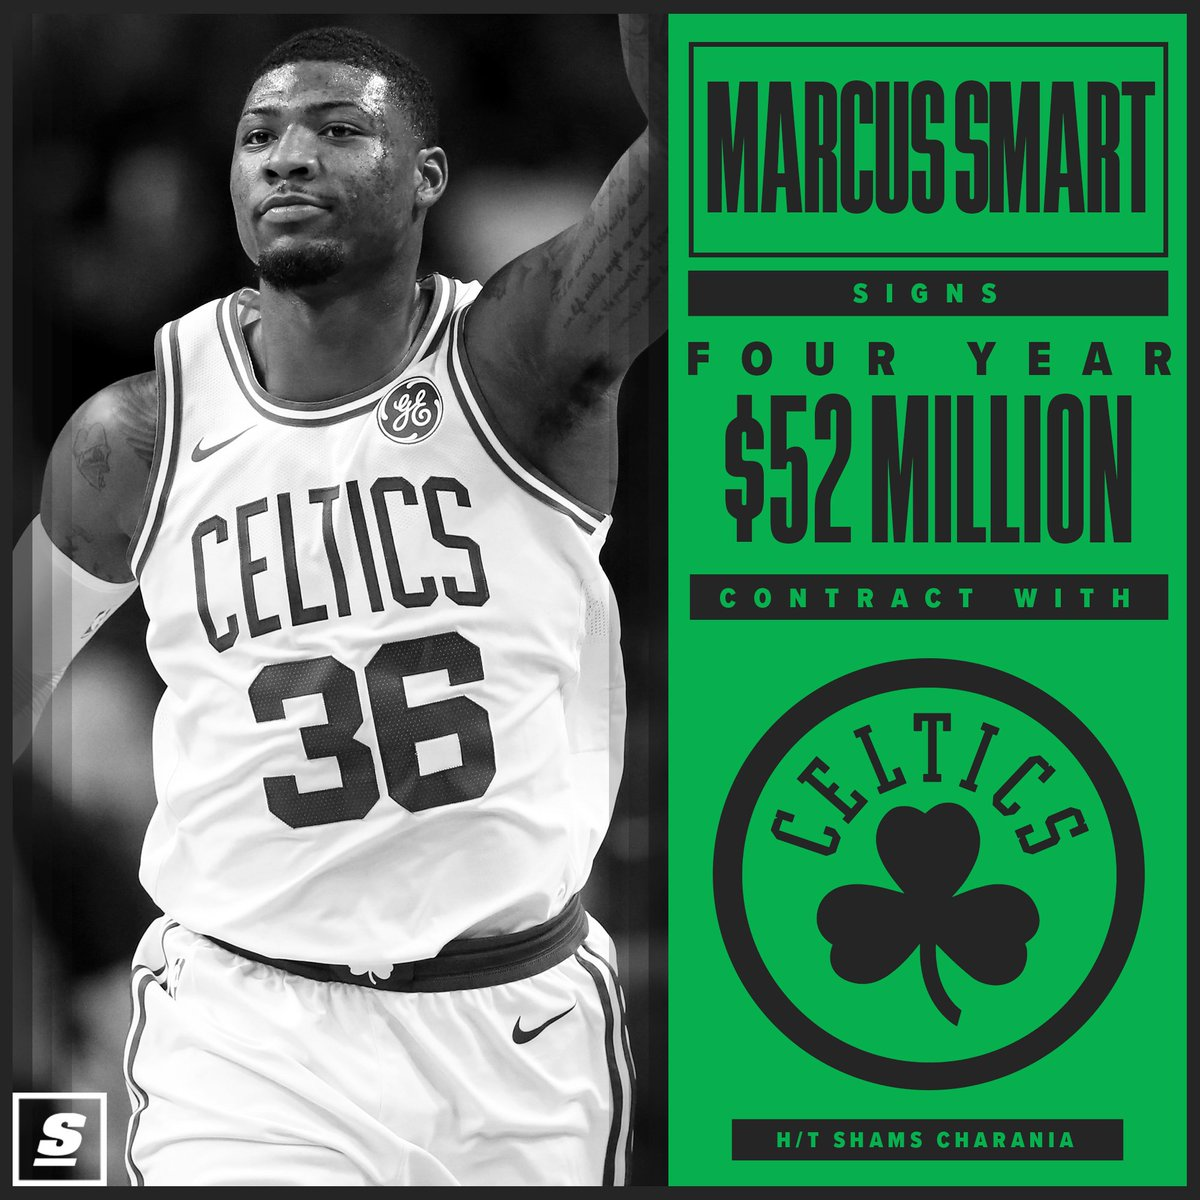 The Celtics bring back Marcus Smart. ☘️🏀